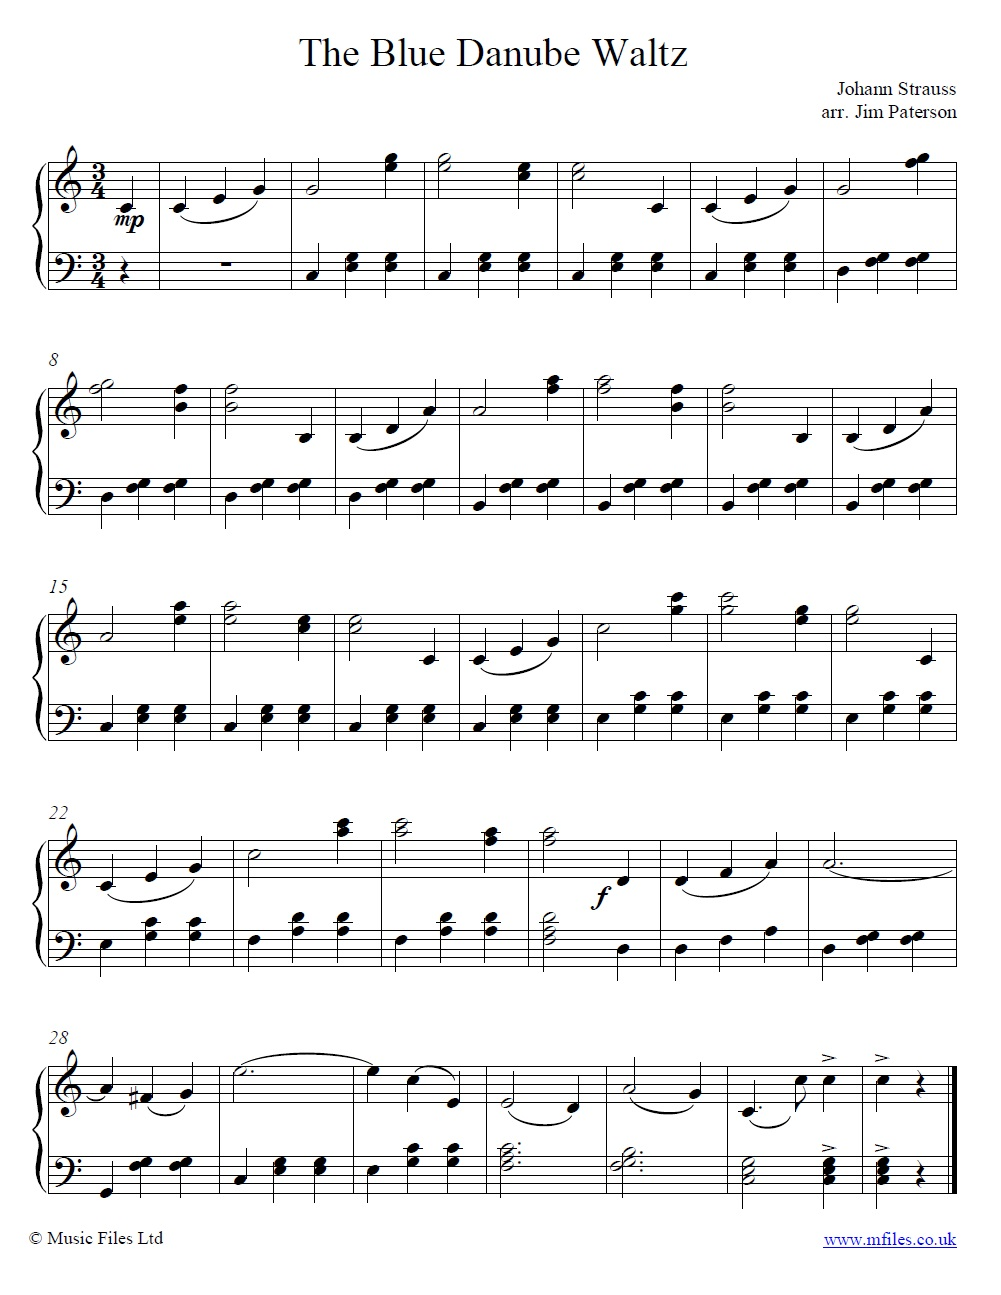 Strauss' The Blue Danube Waltz theme for piano - sheet music 1st page